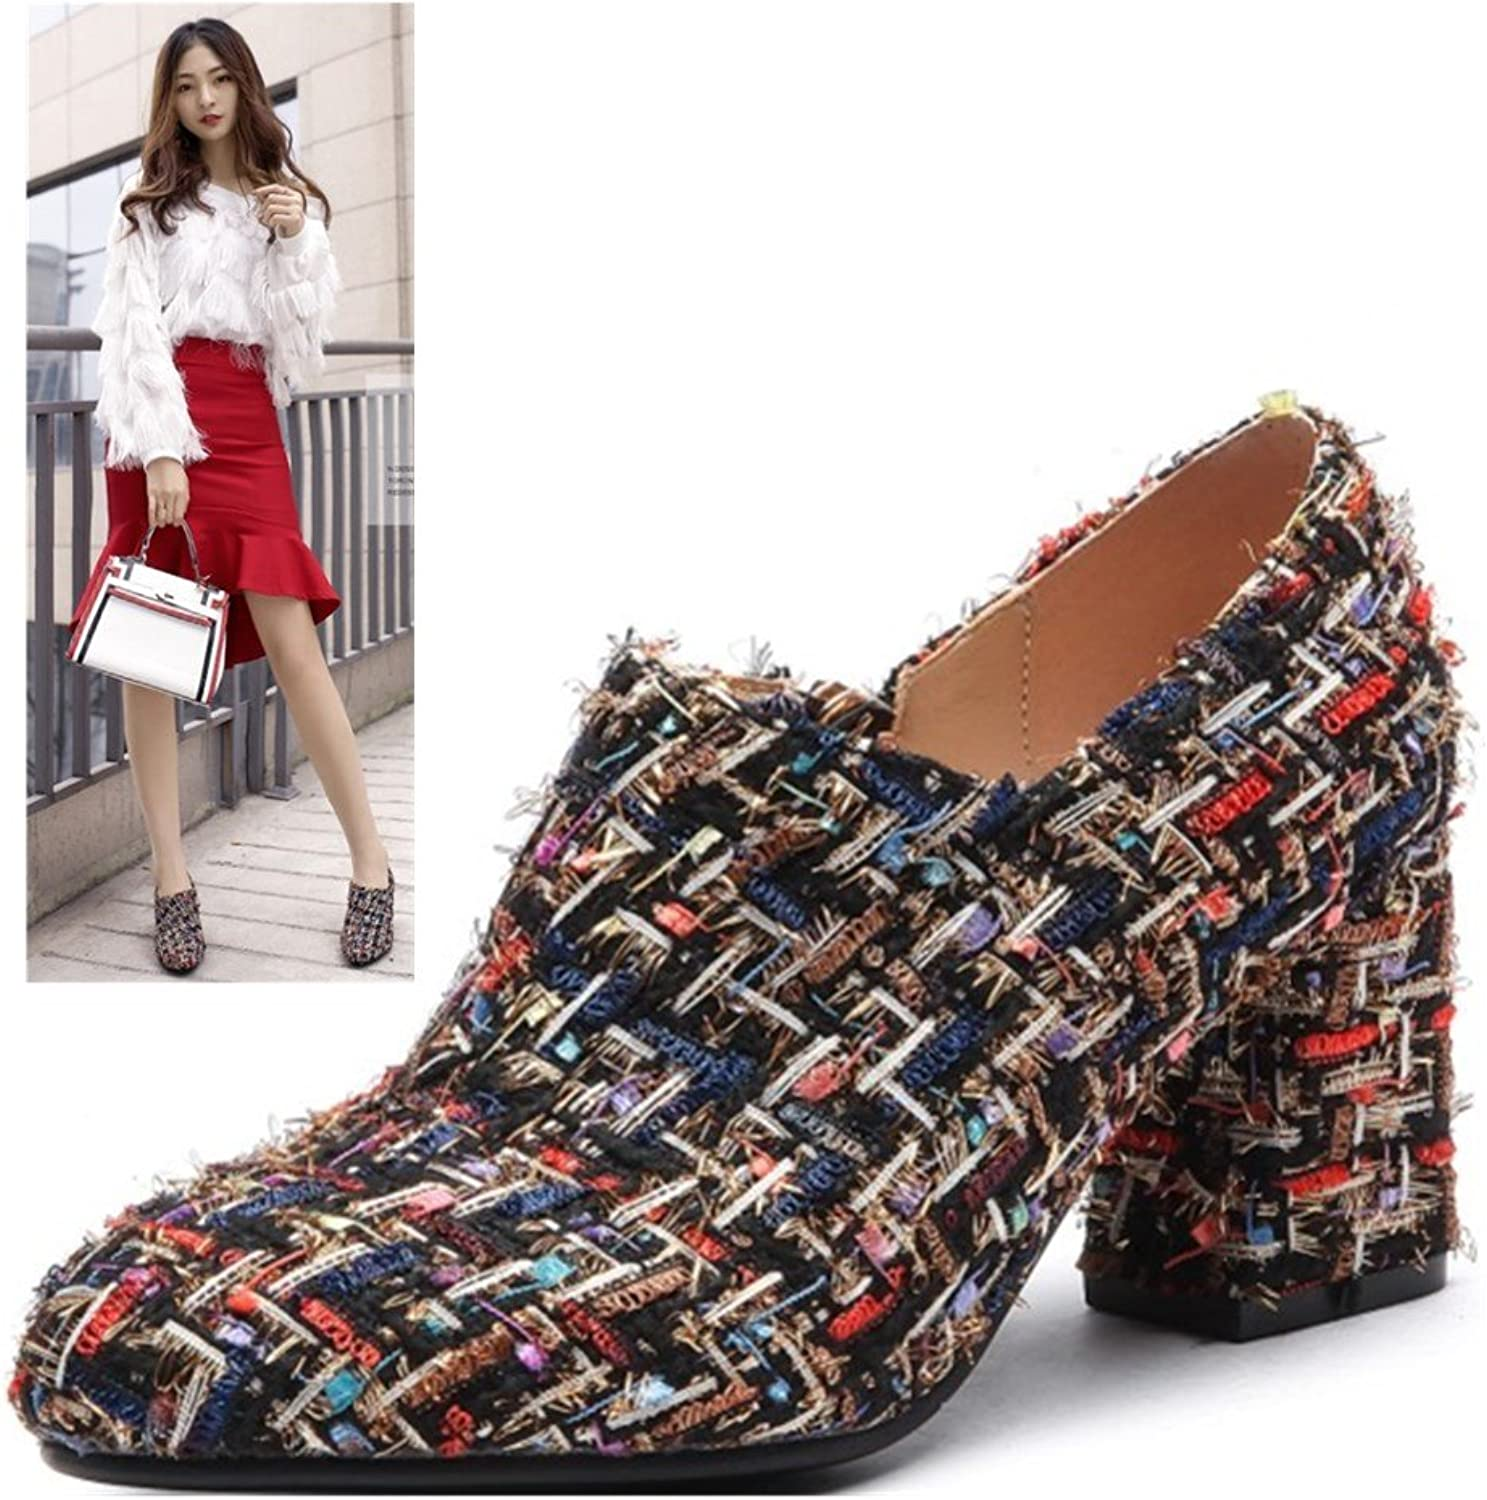 AnMengXinLing Spring High Heel Ankle Boots for Women New Velvet Round Toe Fashion Square Heel Low Top Boots